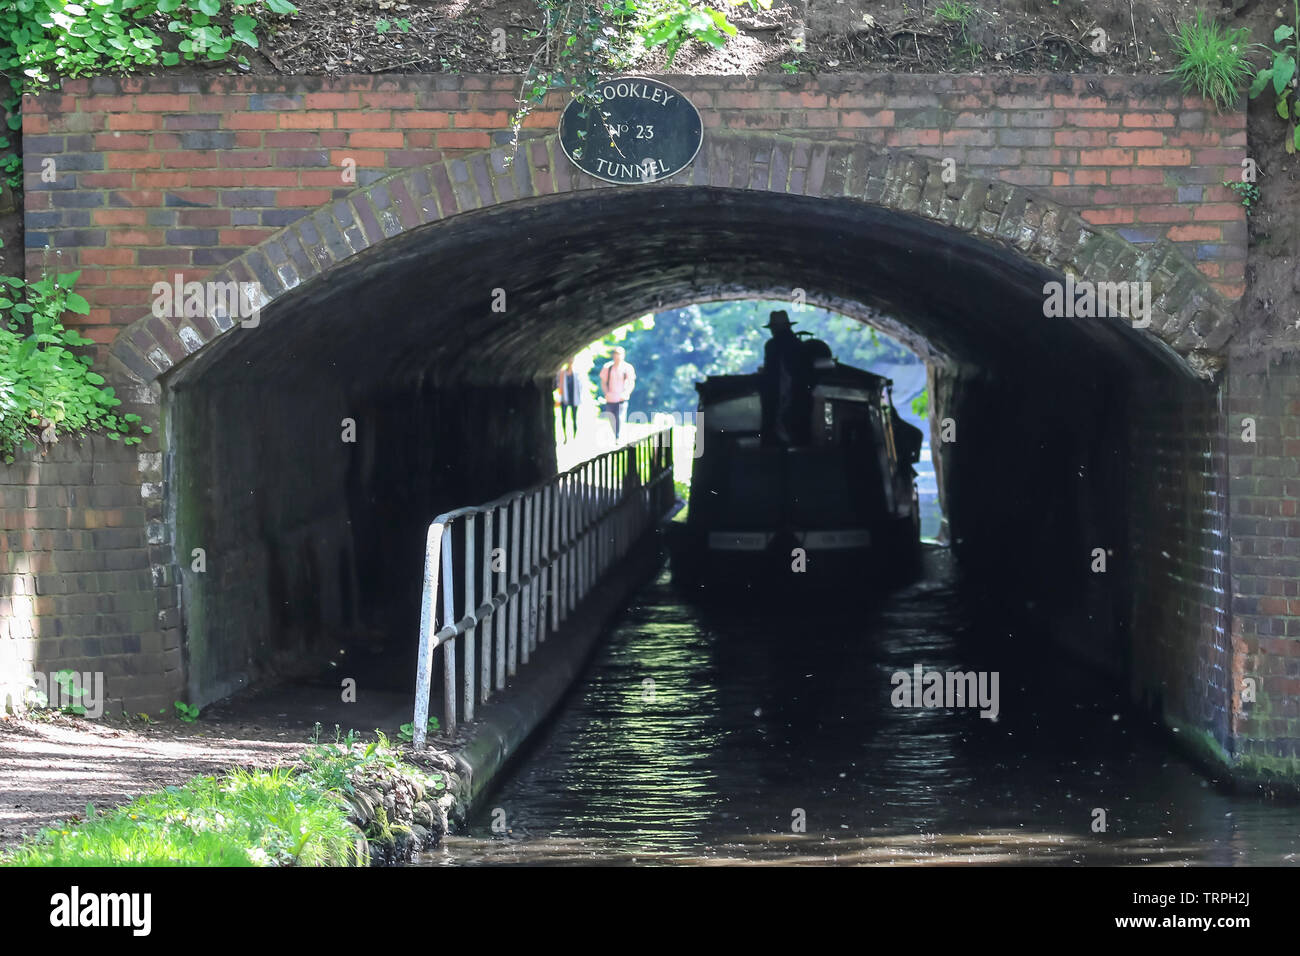 Silhouetted rear view of narrowboat on a UK canal moving away through a dark canal tunnel; people on towpath watching at other end in bright sunlight. Stock Photo